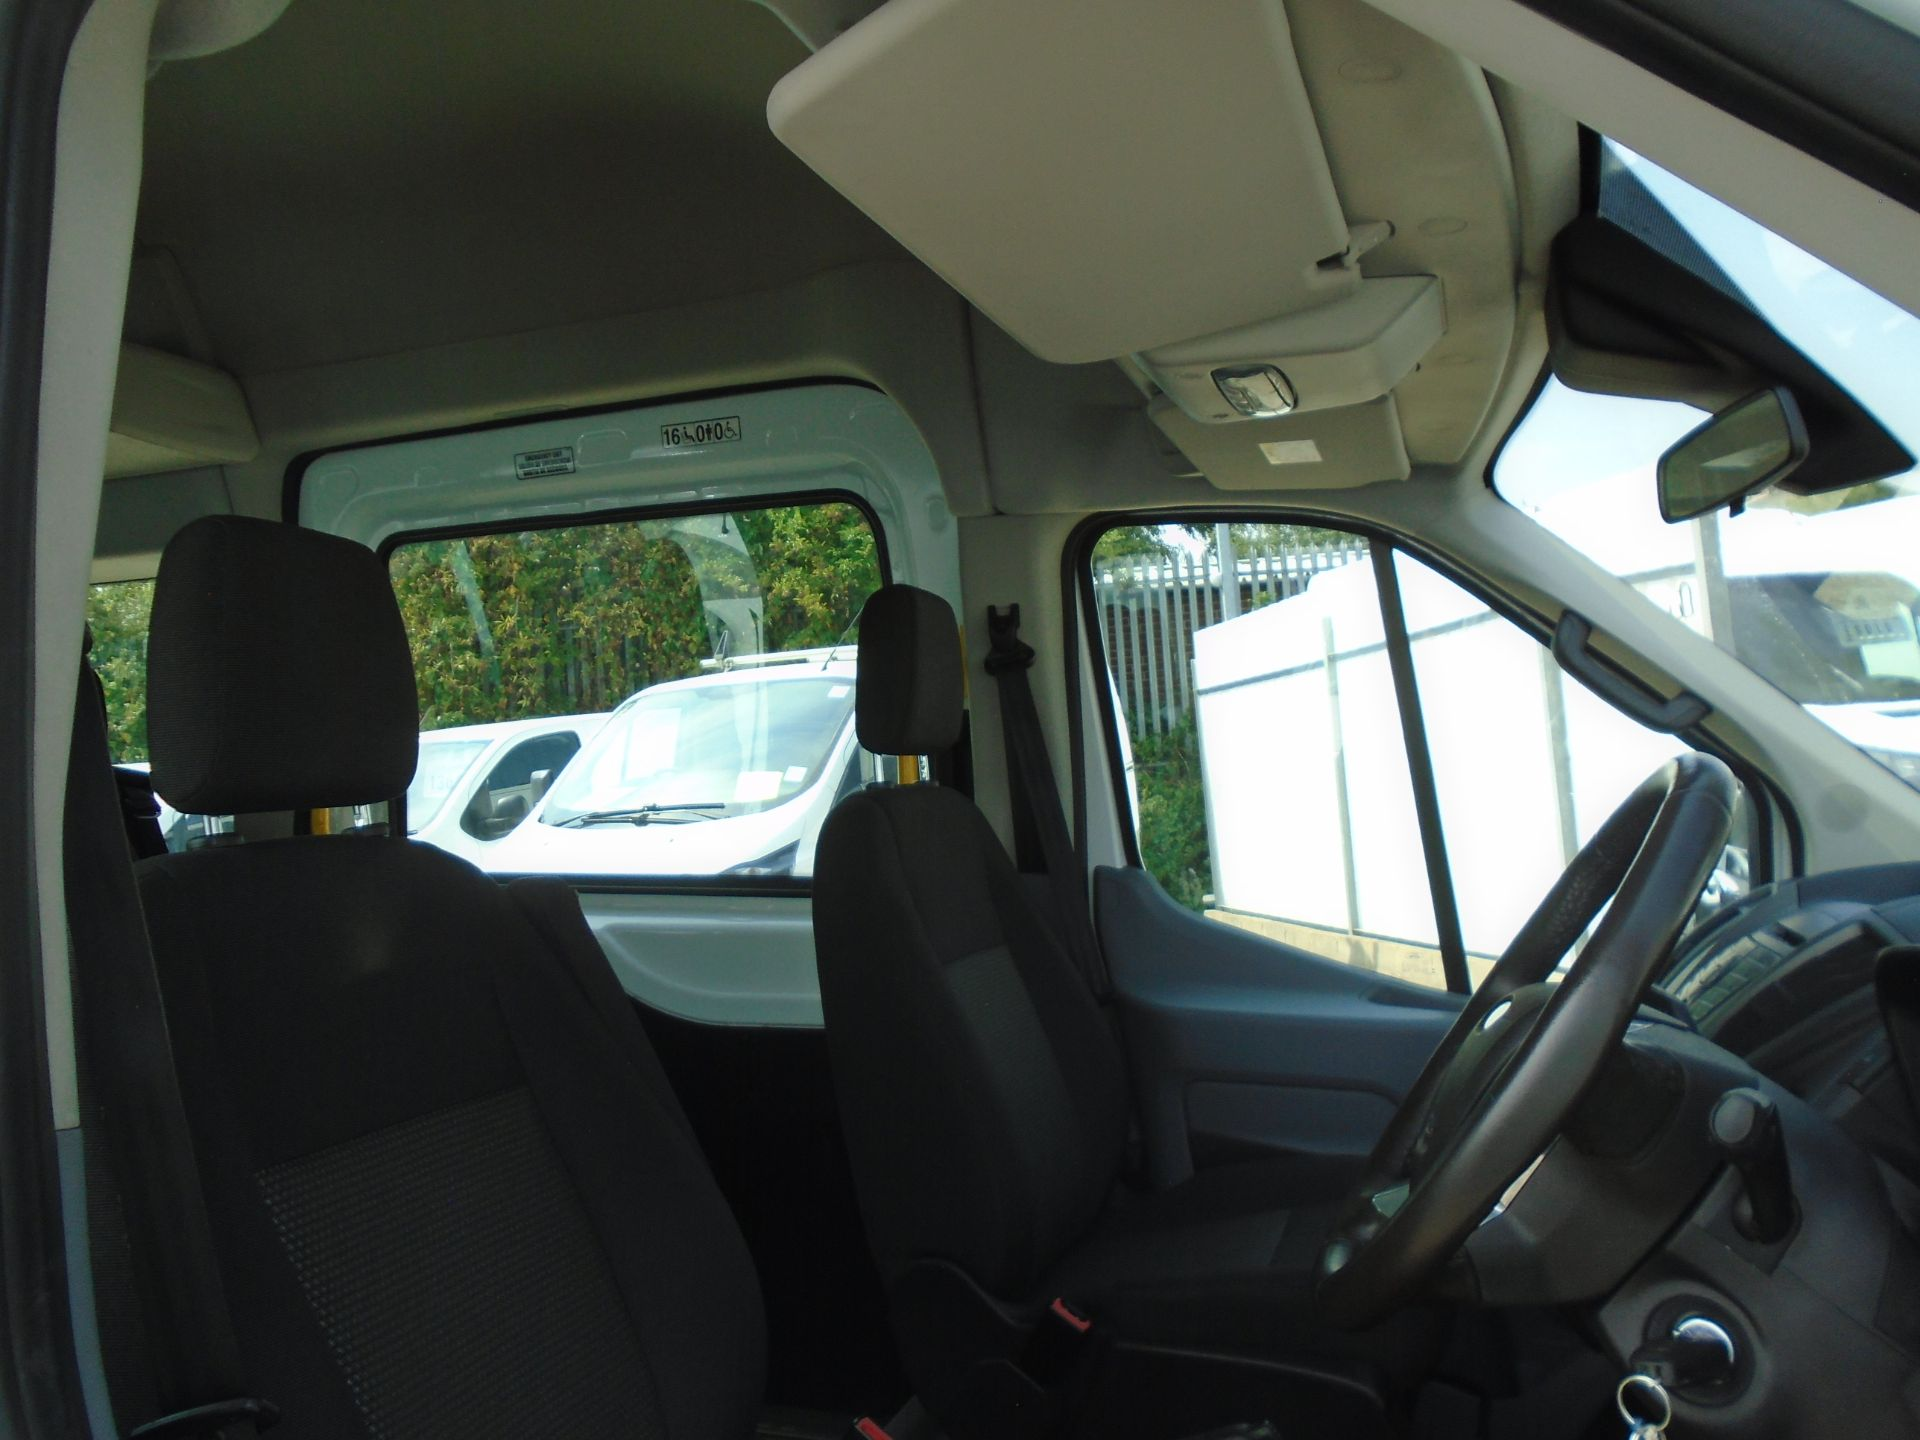 2016 Ford Transit 2.2 Tdci 125Ps H3 17 Seater (FP16UMV) Image 27